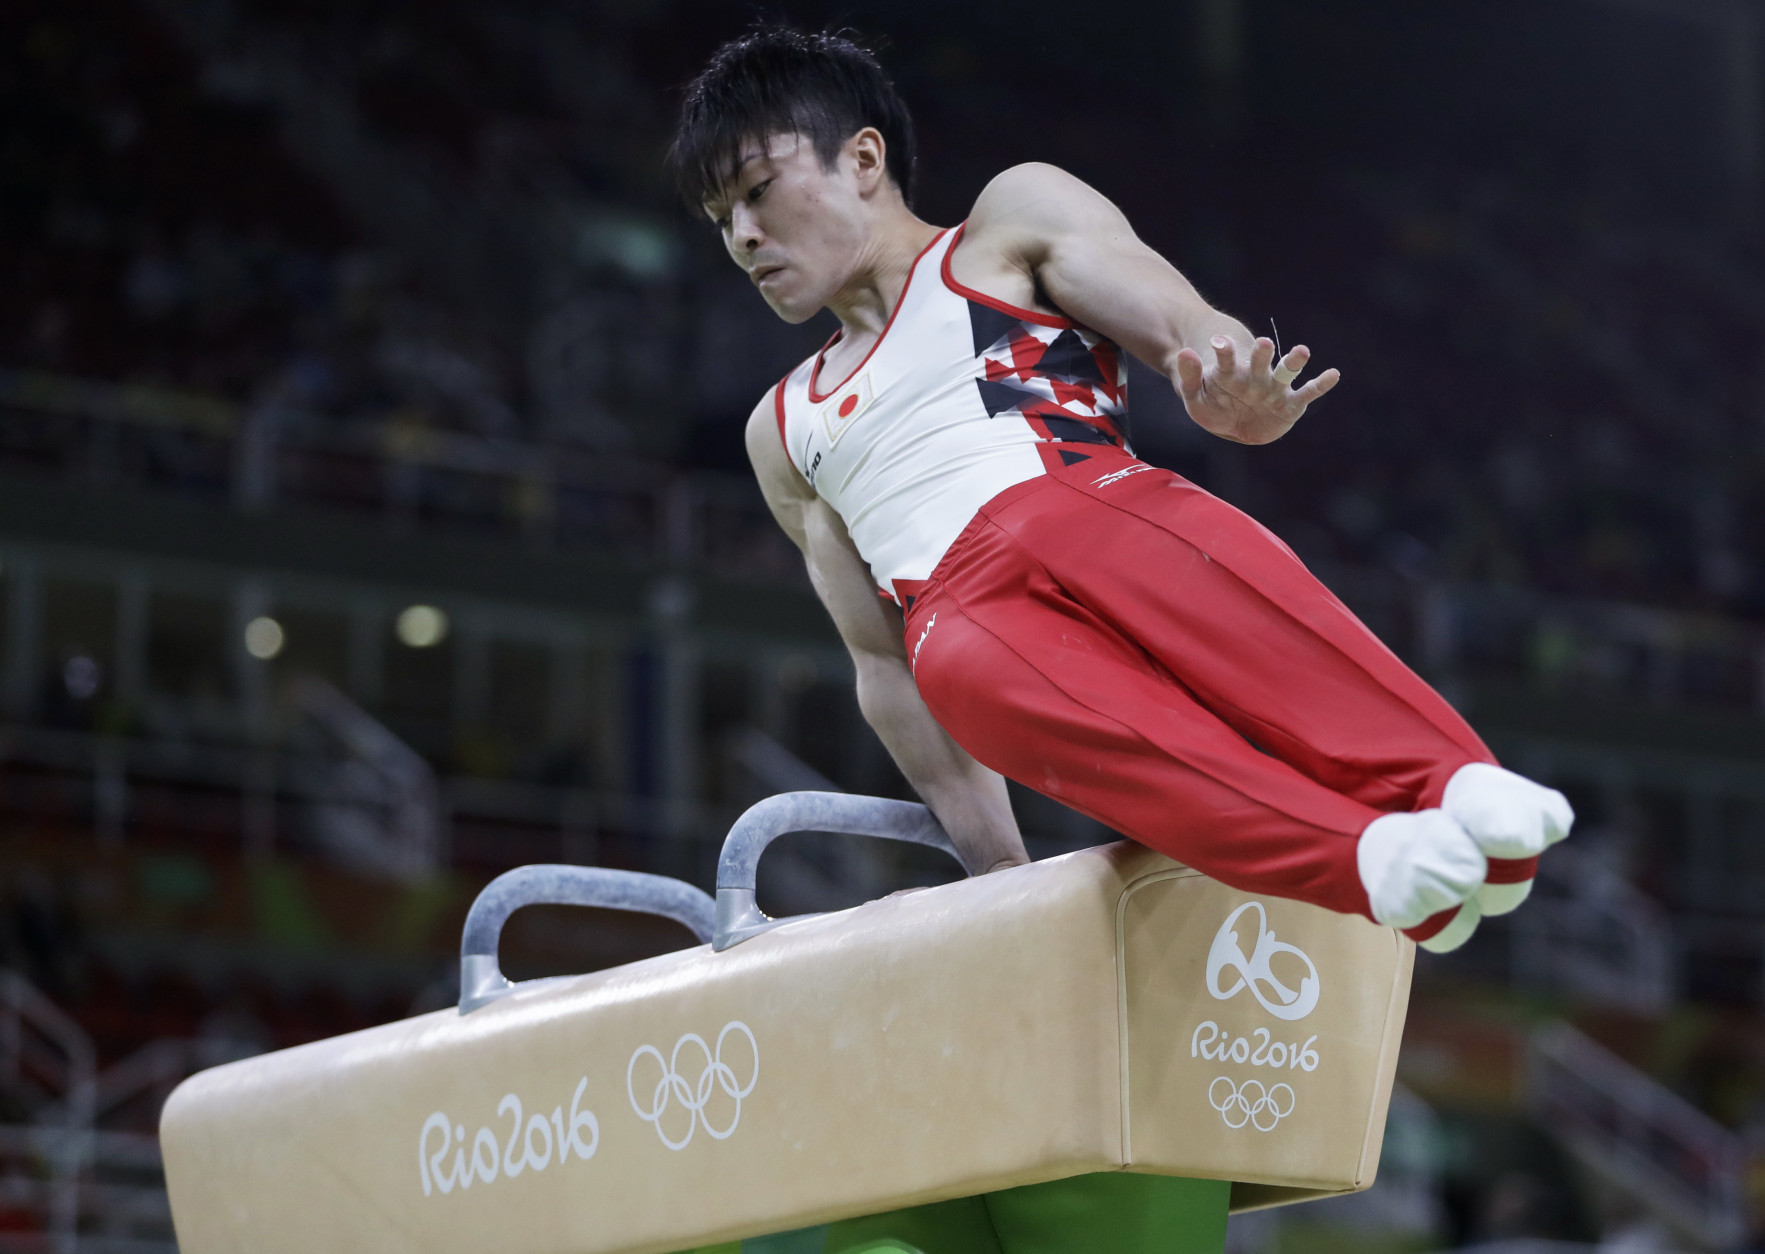 Japan's Kohei Uchimura performs on the pommel horse during the artistic gymnastics men's qualification at the 2016 Summer Olympics in Rio de Janeiro, Brazil, Saturday, Aug. 6, 2016. (AP Photo/Julio Cortez)